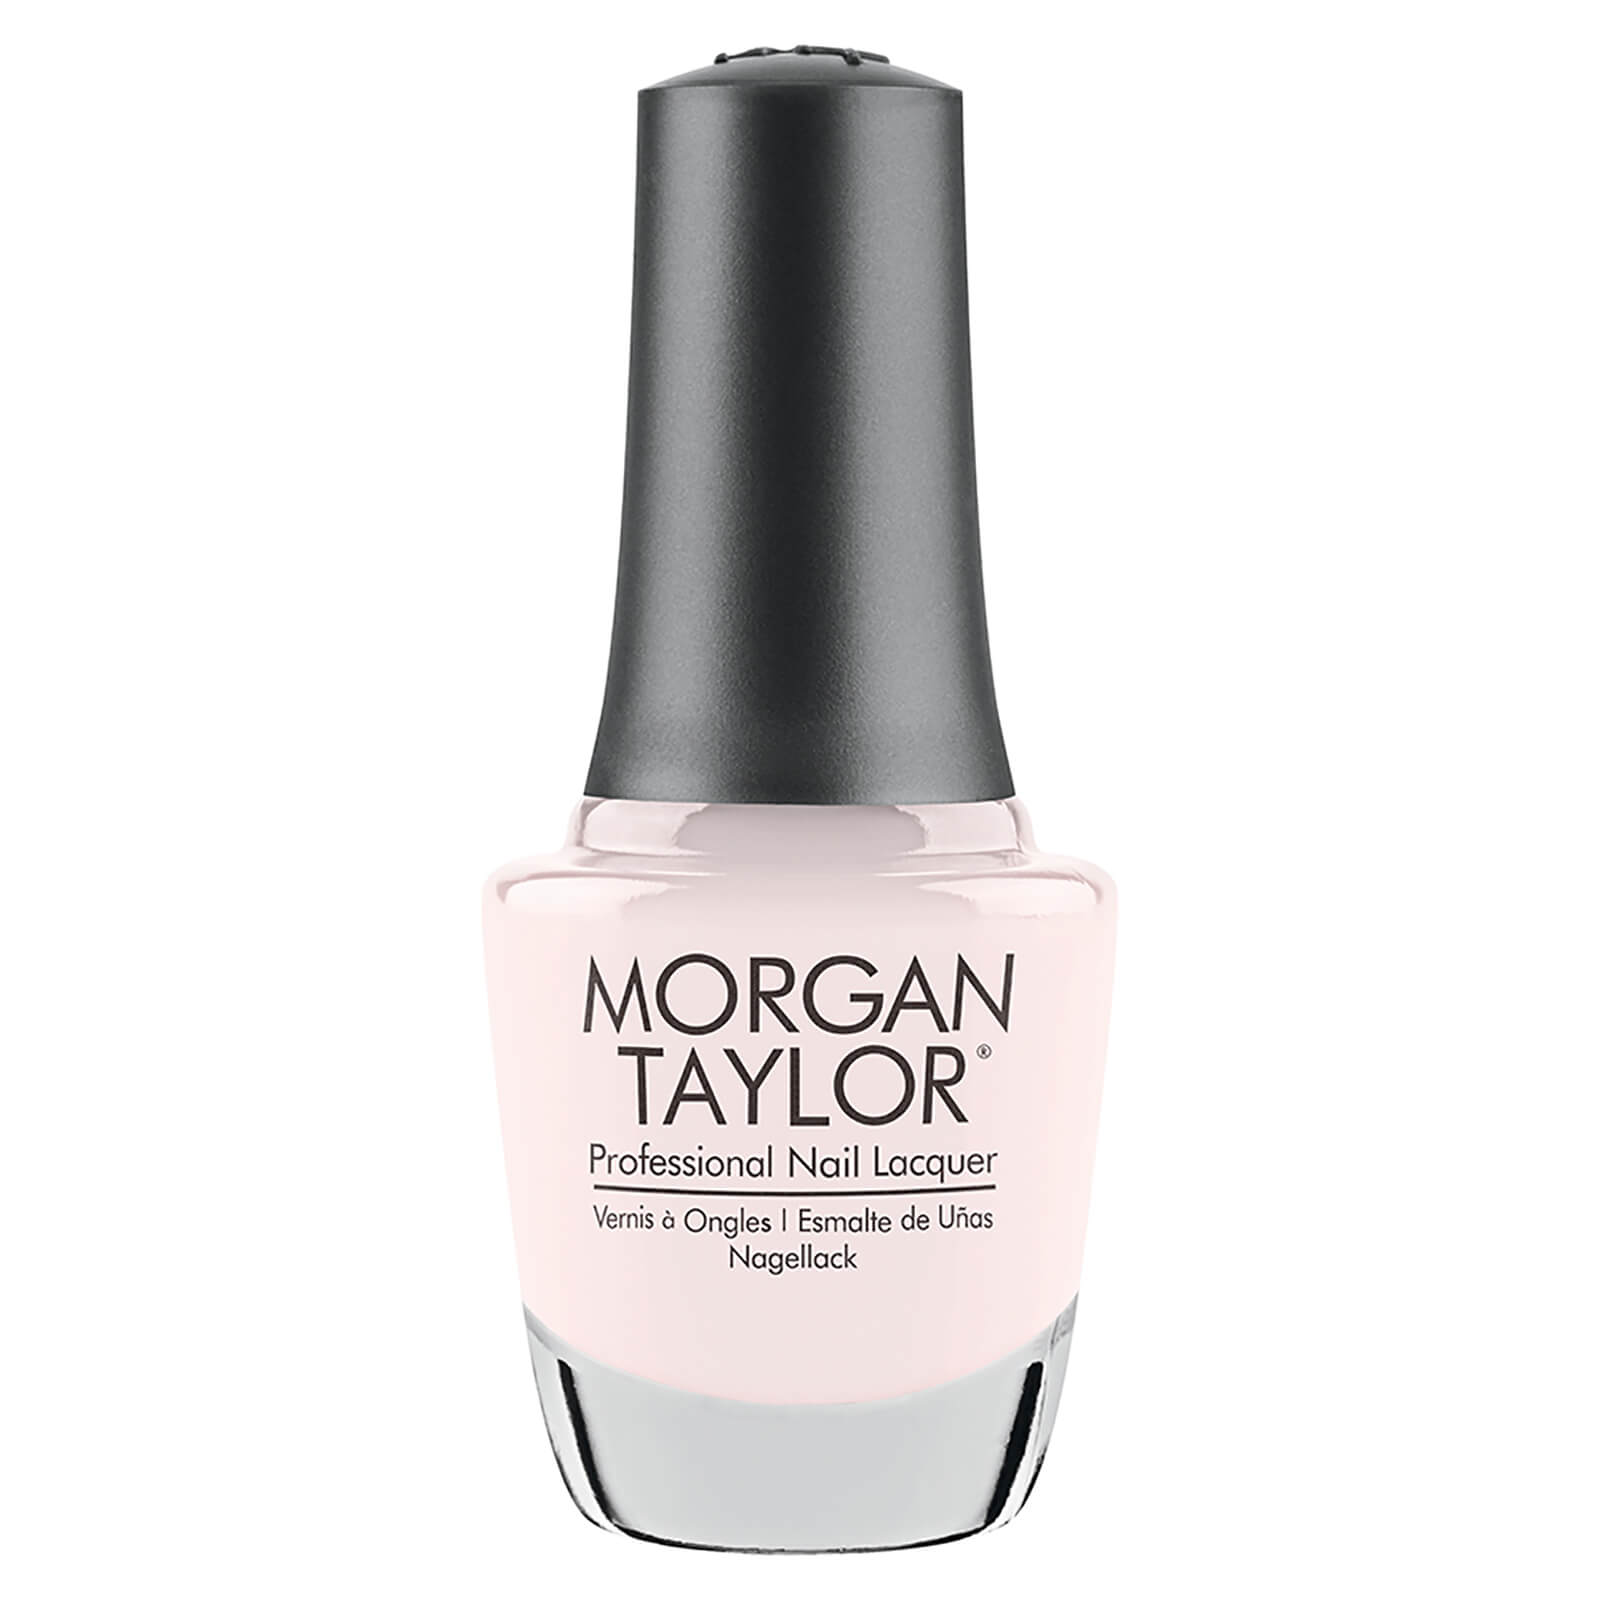 Morgan Taylor Professional Nail Lacquer in One and Only